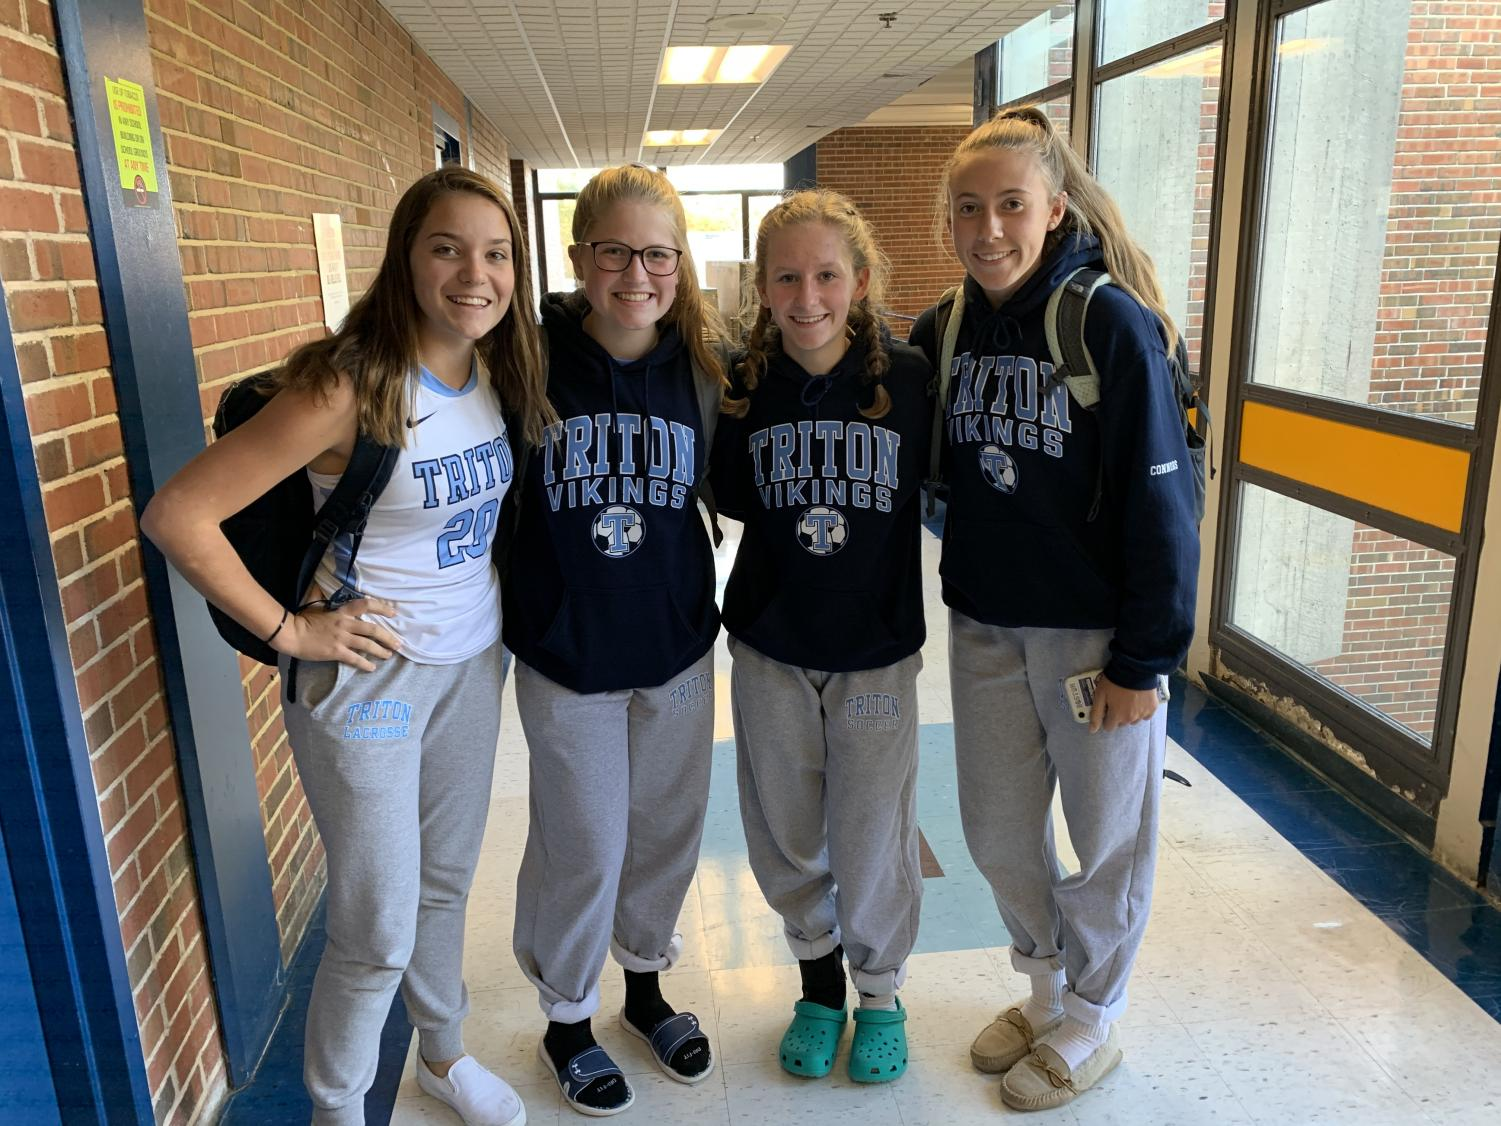 A group of freshmen girls pictured in the hallways of Triton  left to right Ally Pugh, Caitlin Frary, Emma Morland, Chloe Connors (Ernst photo)